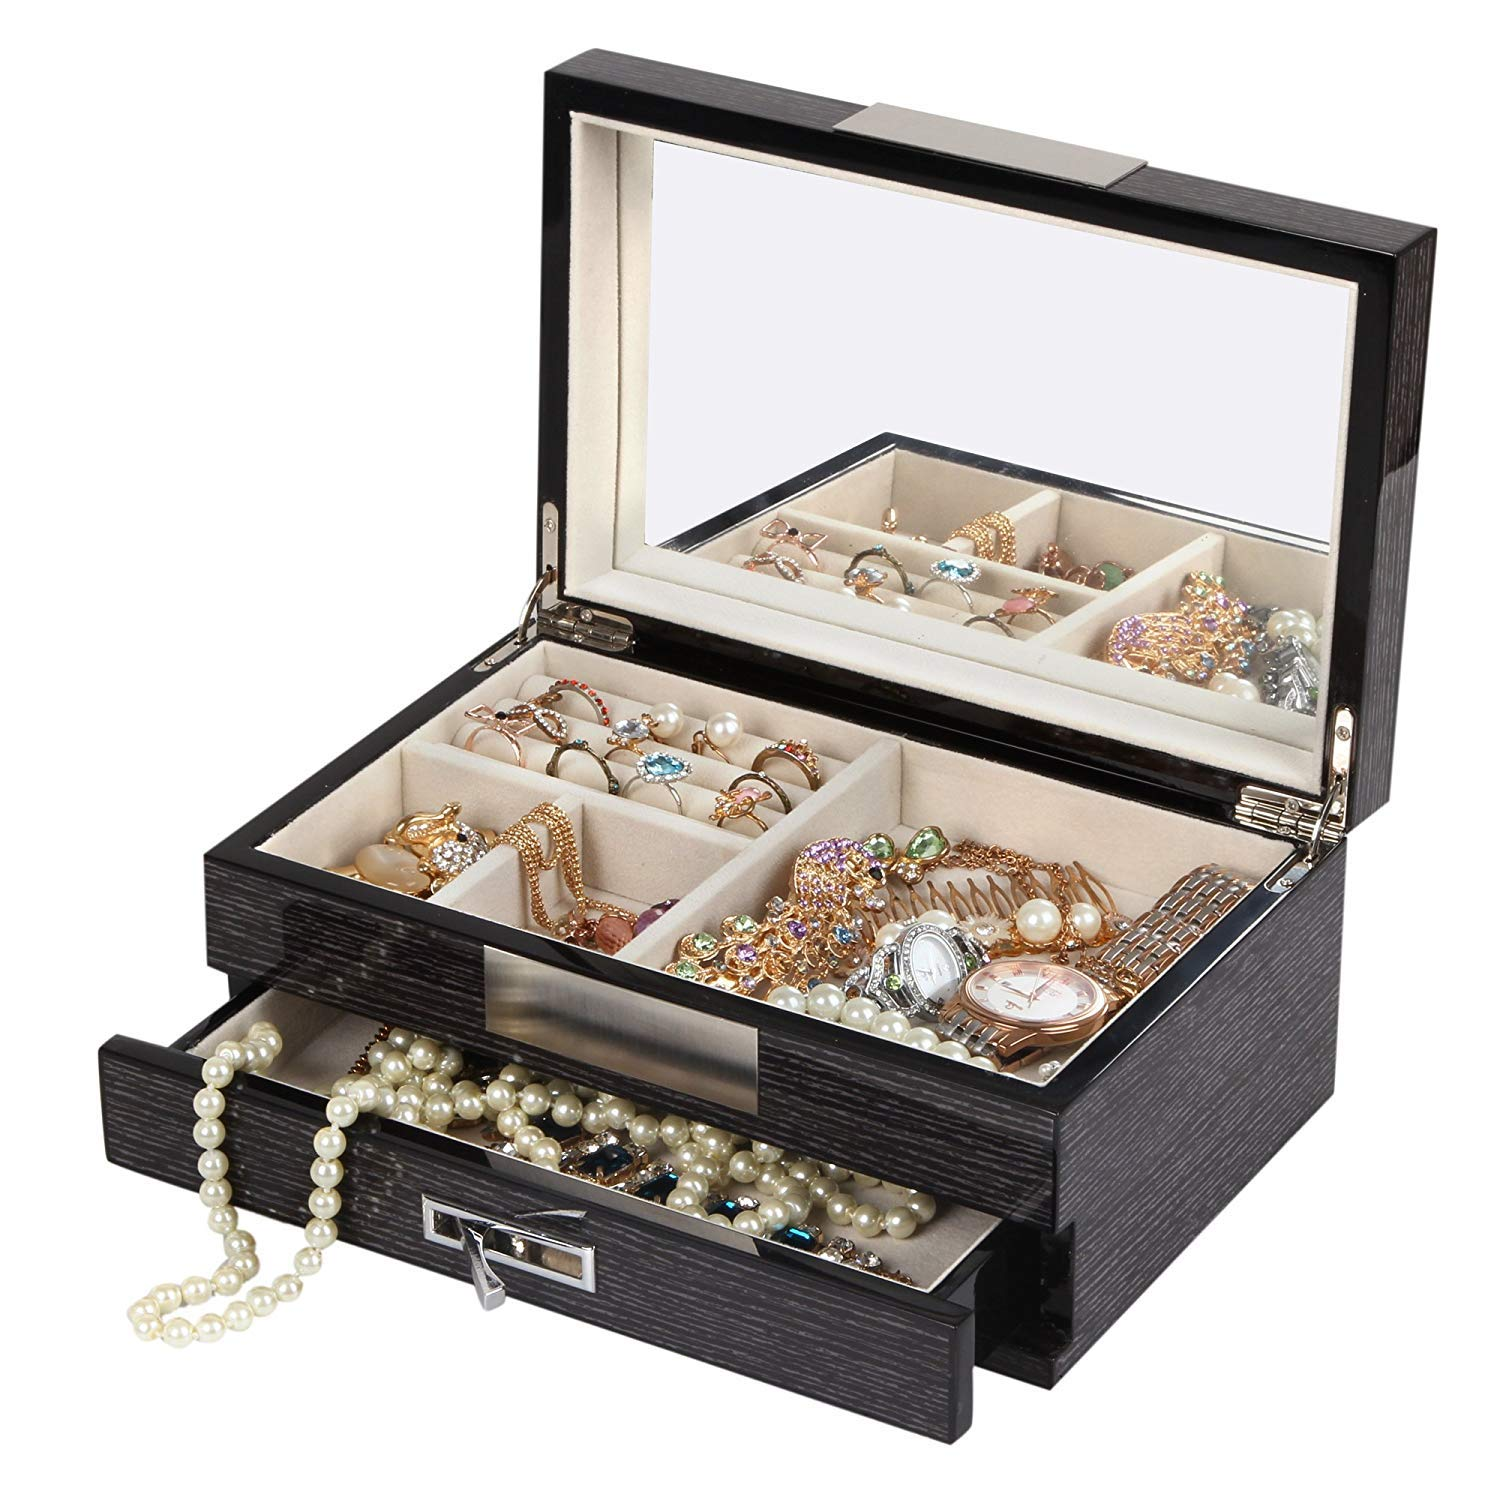 ff365dac7 Amazon.com: Kendal Unisex Wooden Jewelry Box Case Ring Storage Organizer  with Piano Paint (Black): Home & Kitchen